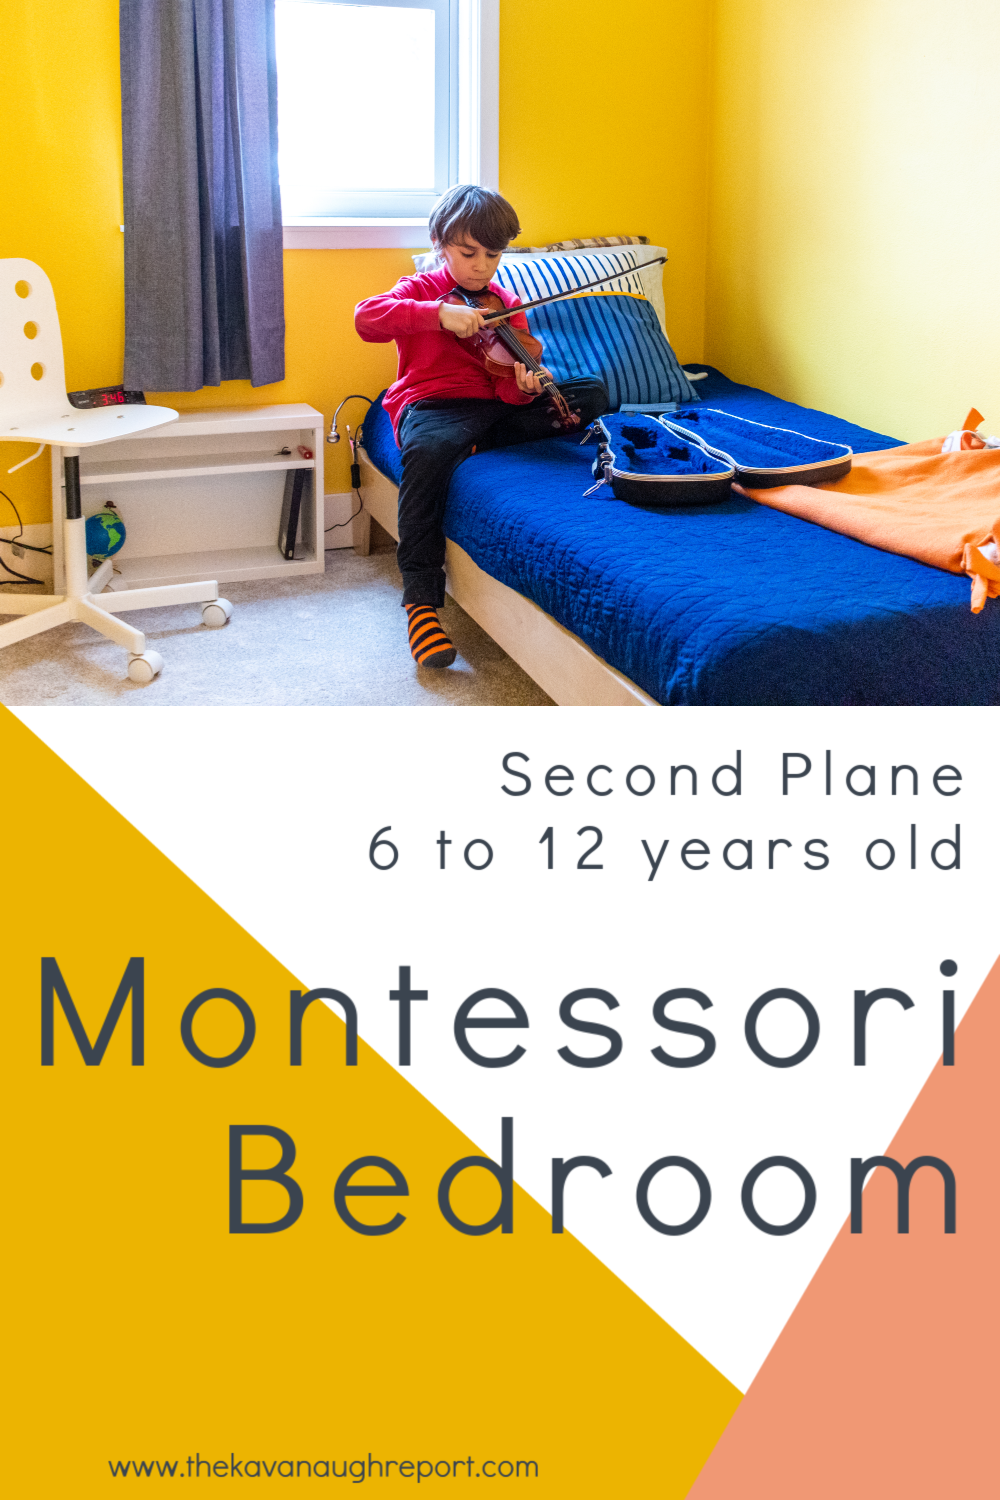 A look at a Montessori bedroom for an older child in the second plane of development. An 8-year-olds Montessori bedroom.